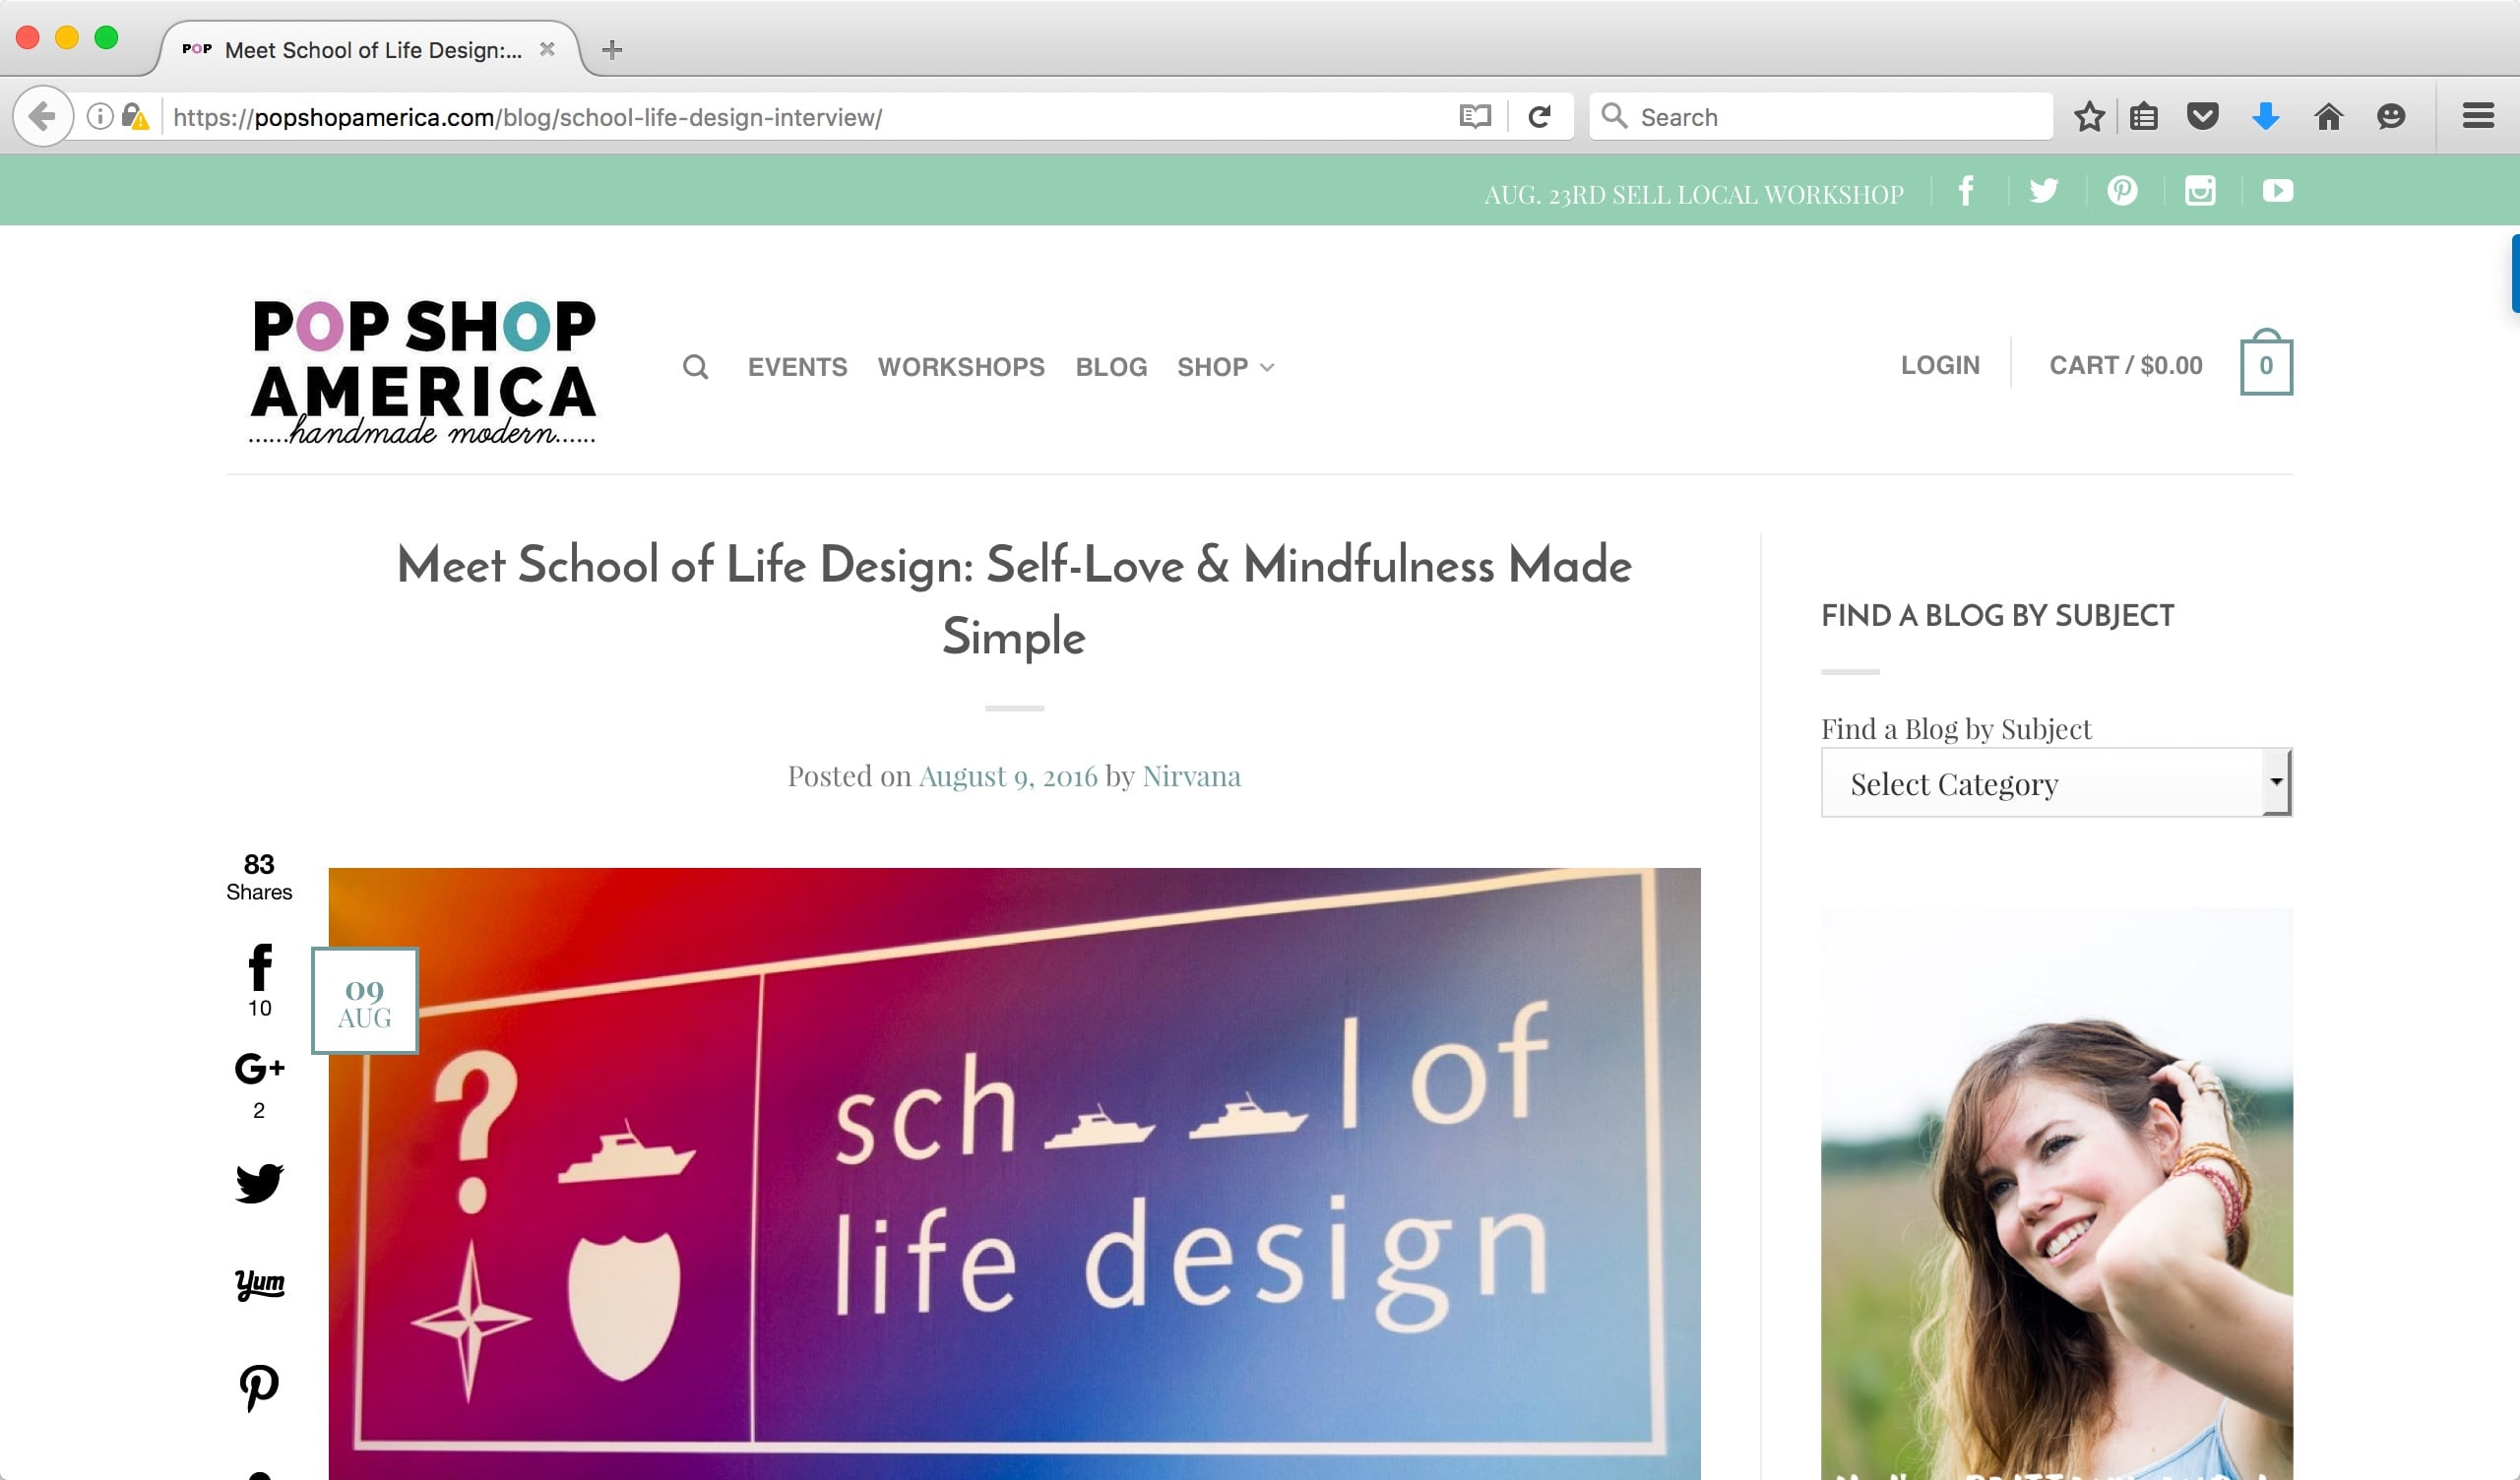 School of Life Design Interview on Pop Shop America